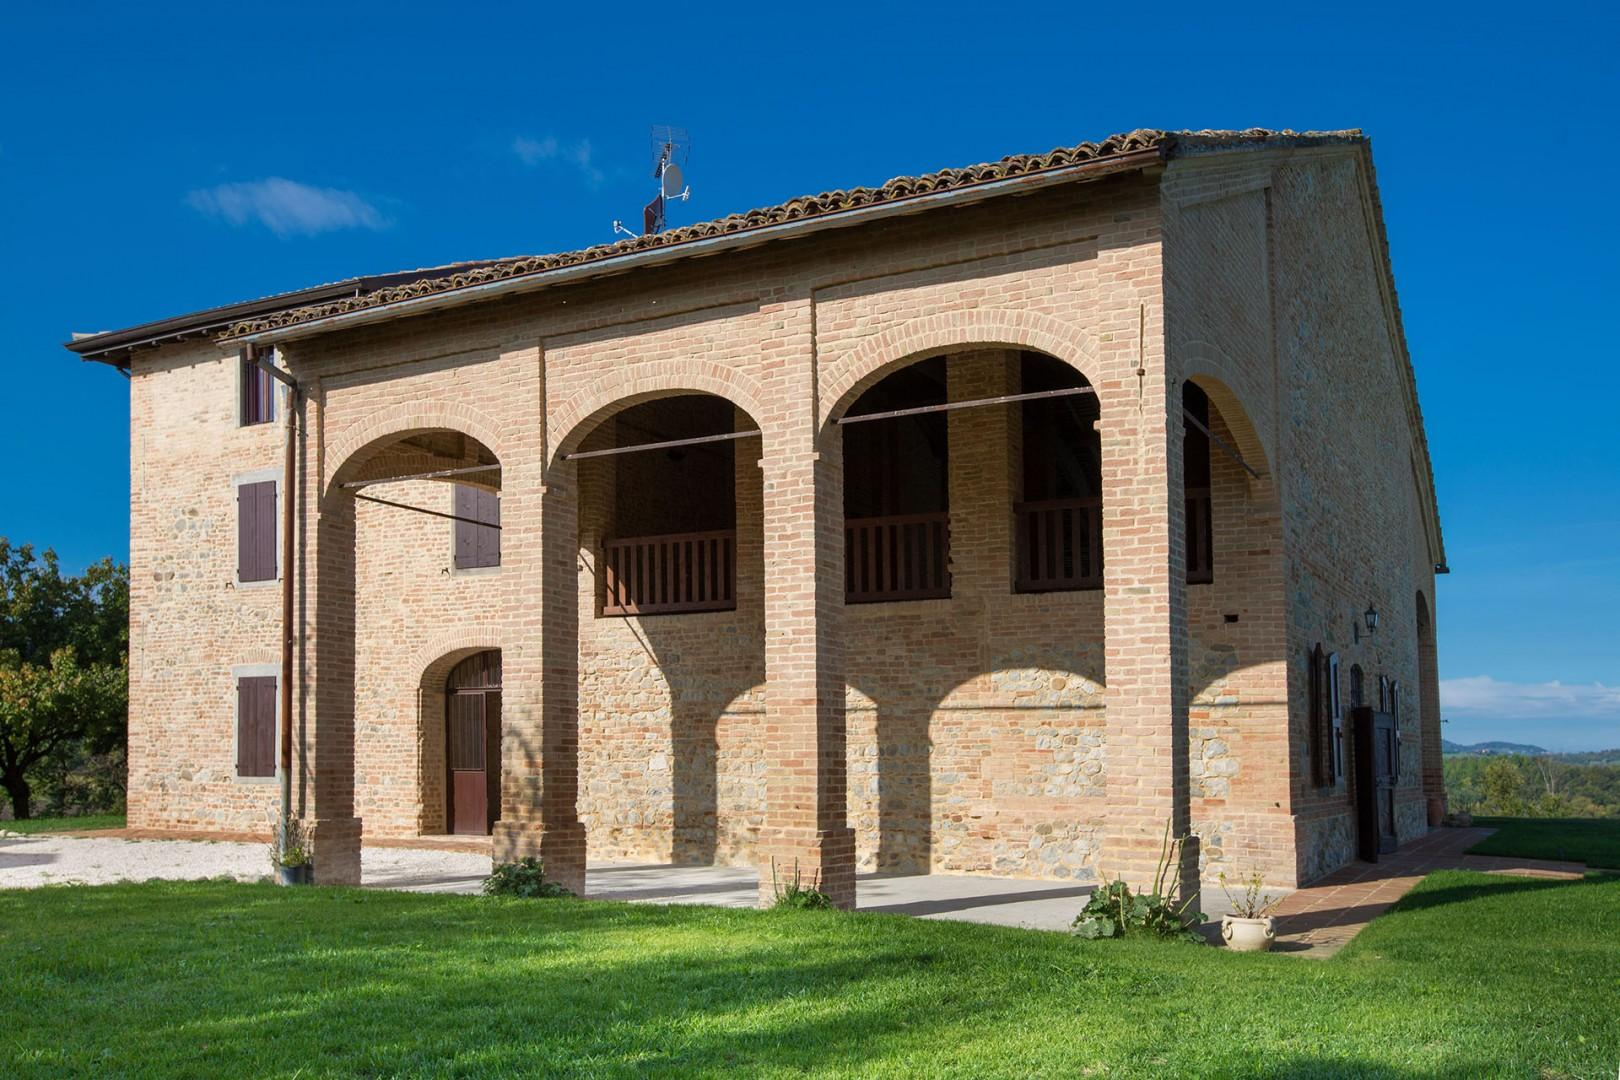 The front of the building has a covered terrace that mirrors the one on the back of the villa.